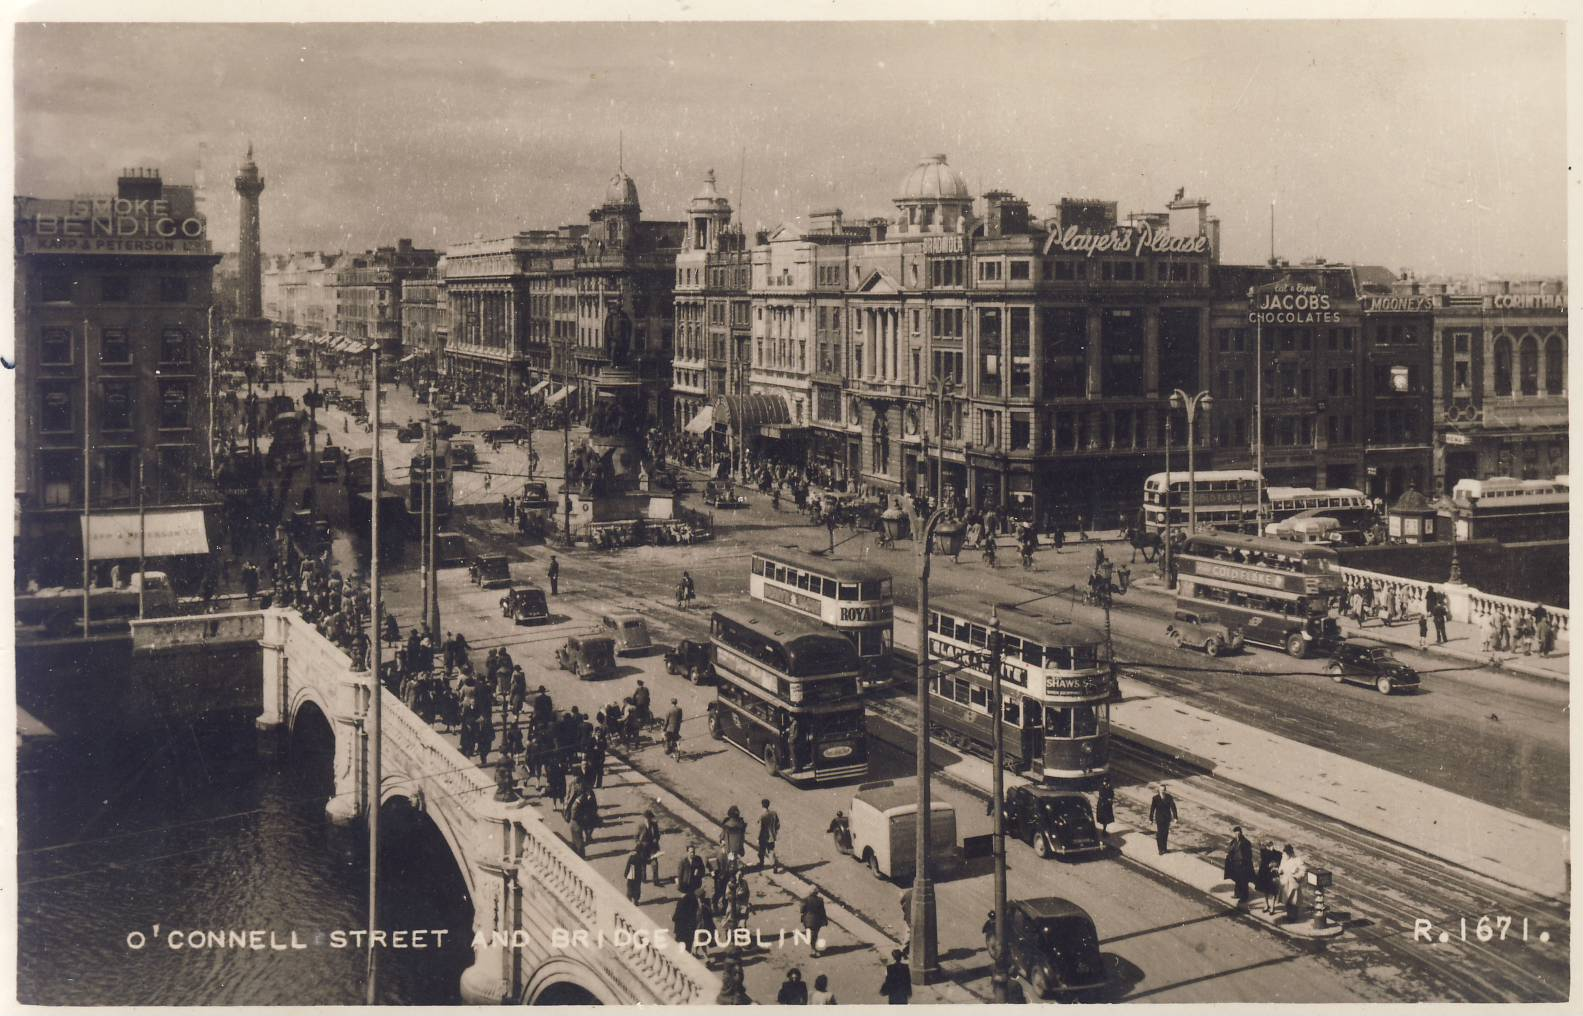 1948 DUBLIN O'Connell Street & Bridge Old Valentine's Postcard refP9 Pre-owned used condition with name address and message on reverse with stamp.